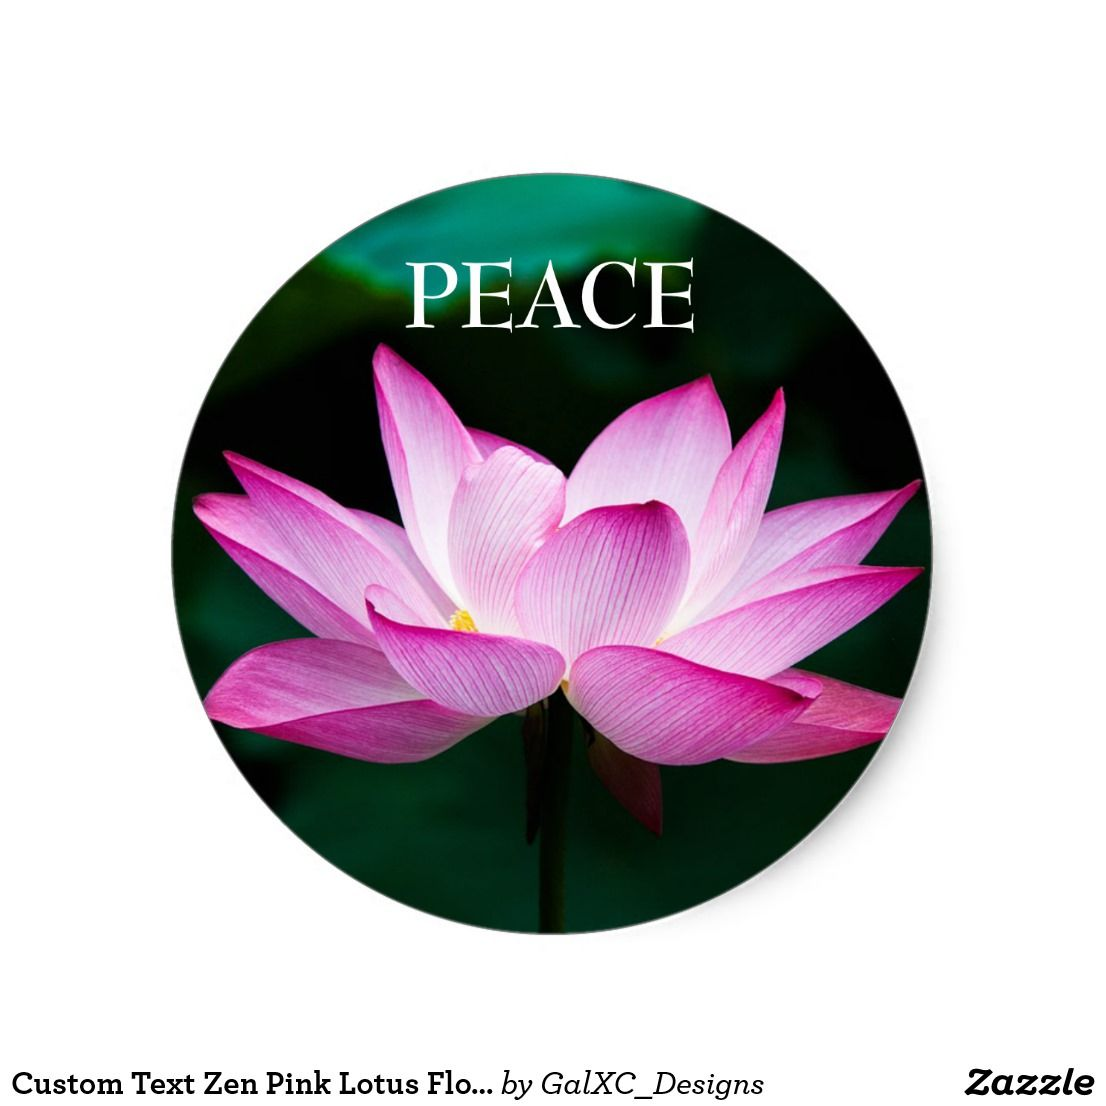 Custom Text Zen Pink Lotus Flower Peace Sticker New Items In